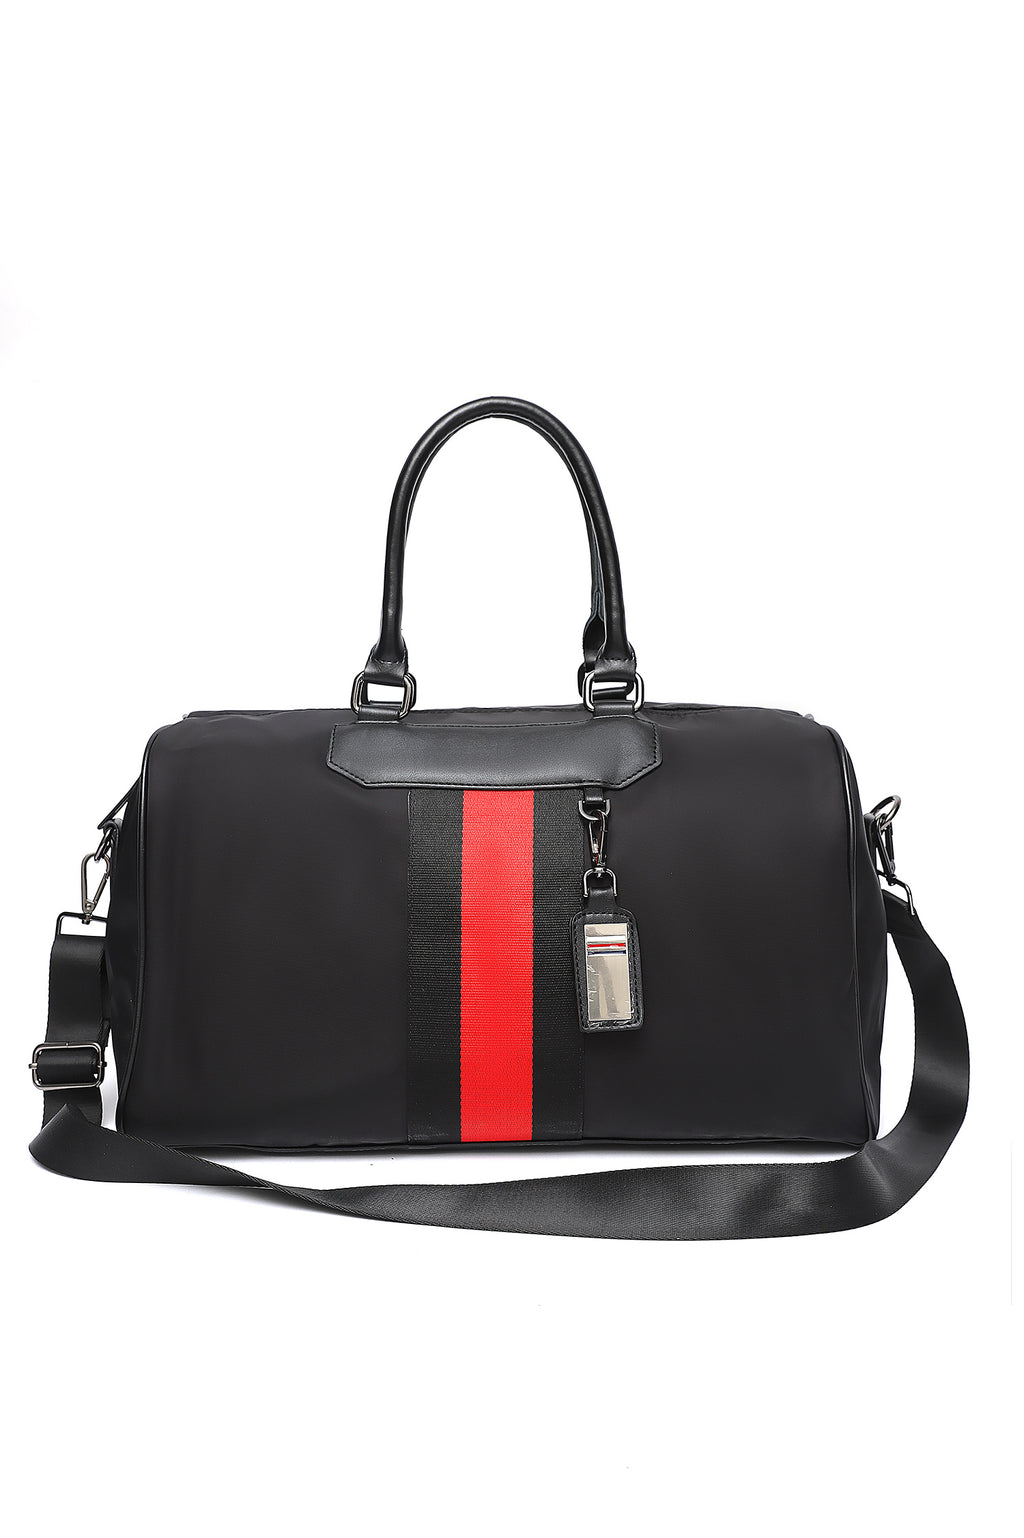 STRIPPED SUFFLE BAG-BLACK-RED